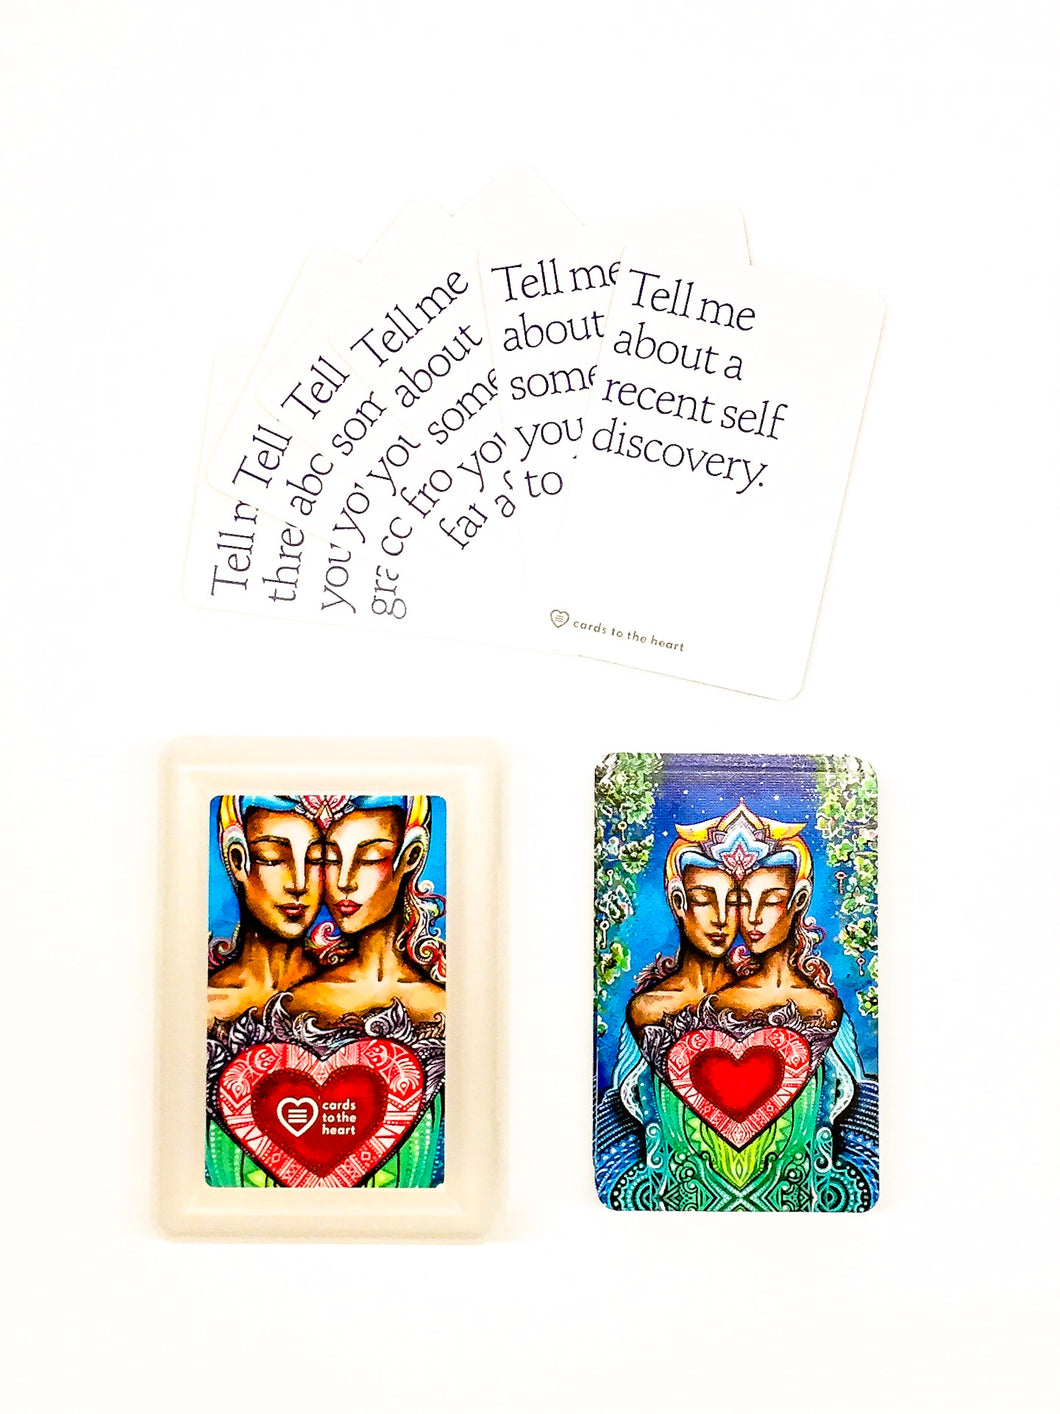 Cards to the Heart